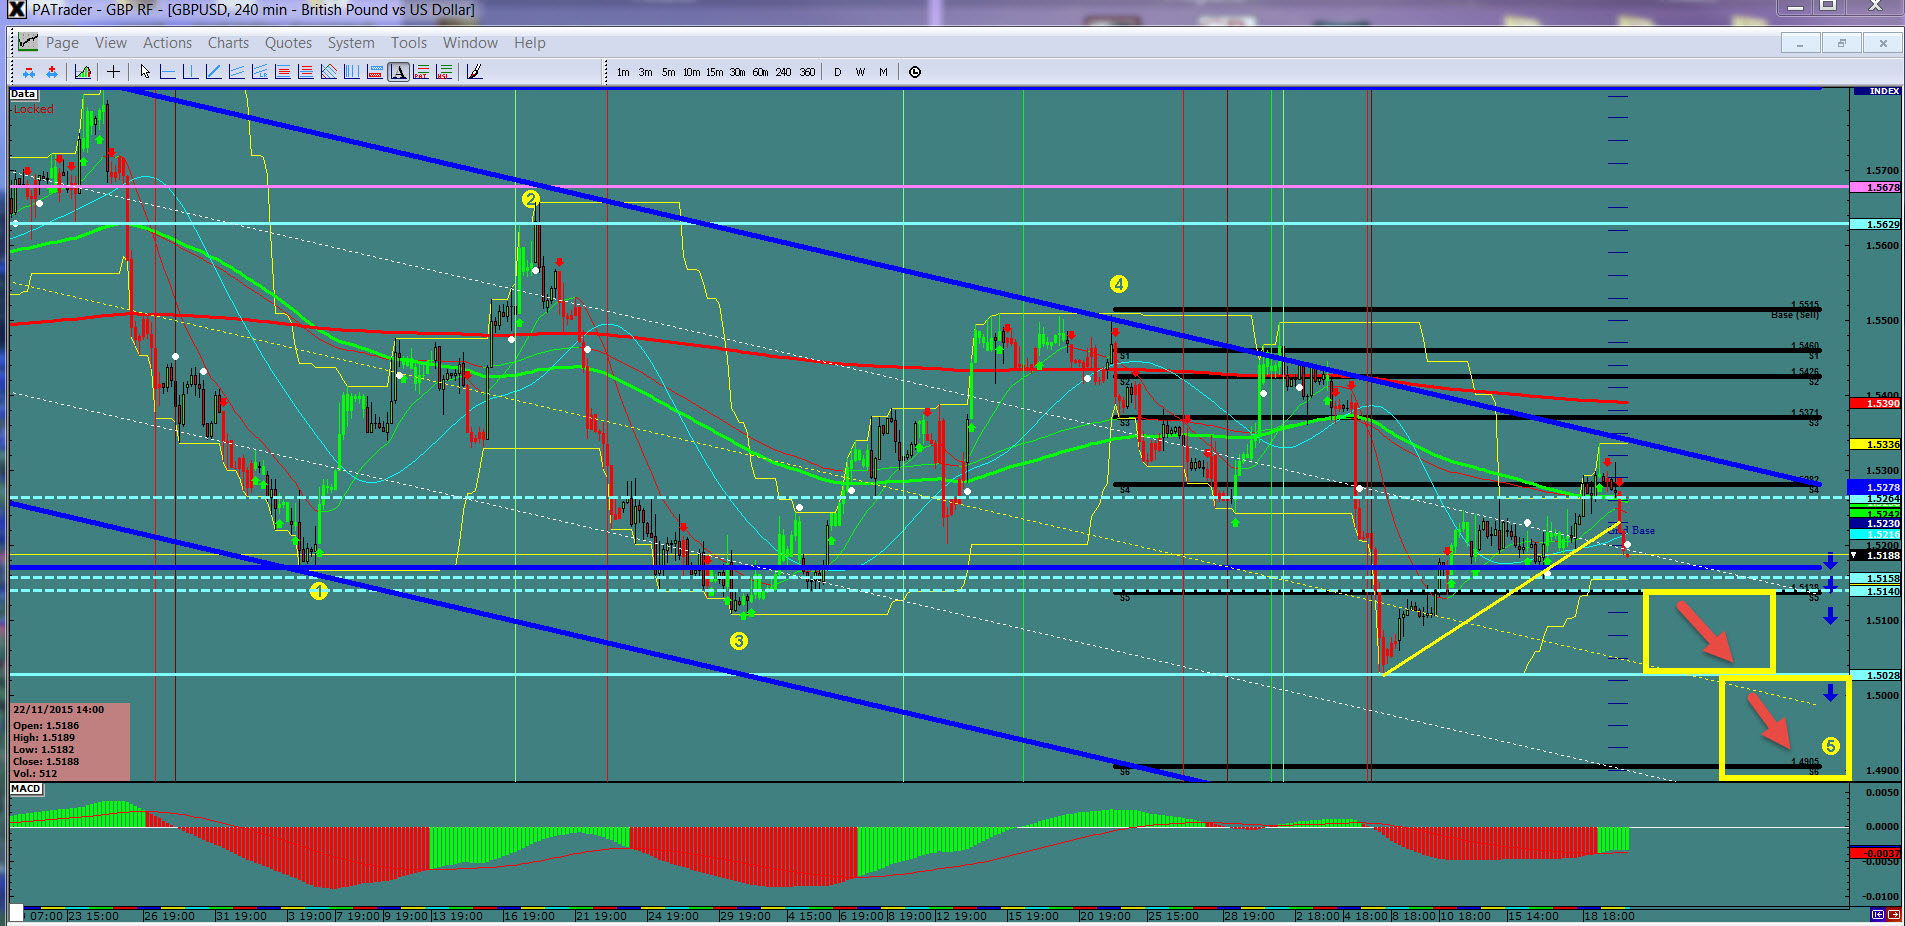 Forex trading 4 hour chart